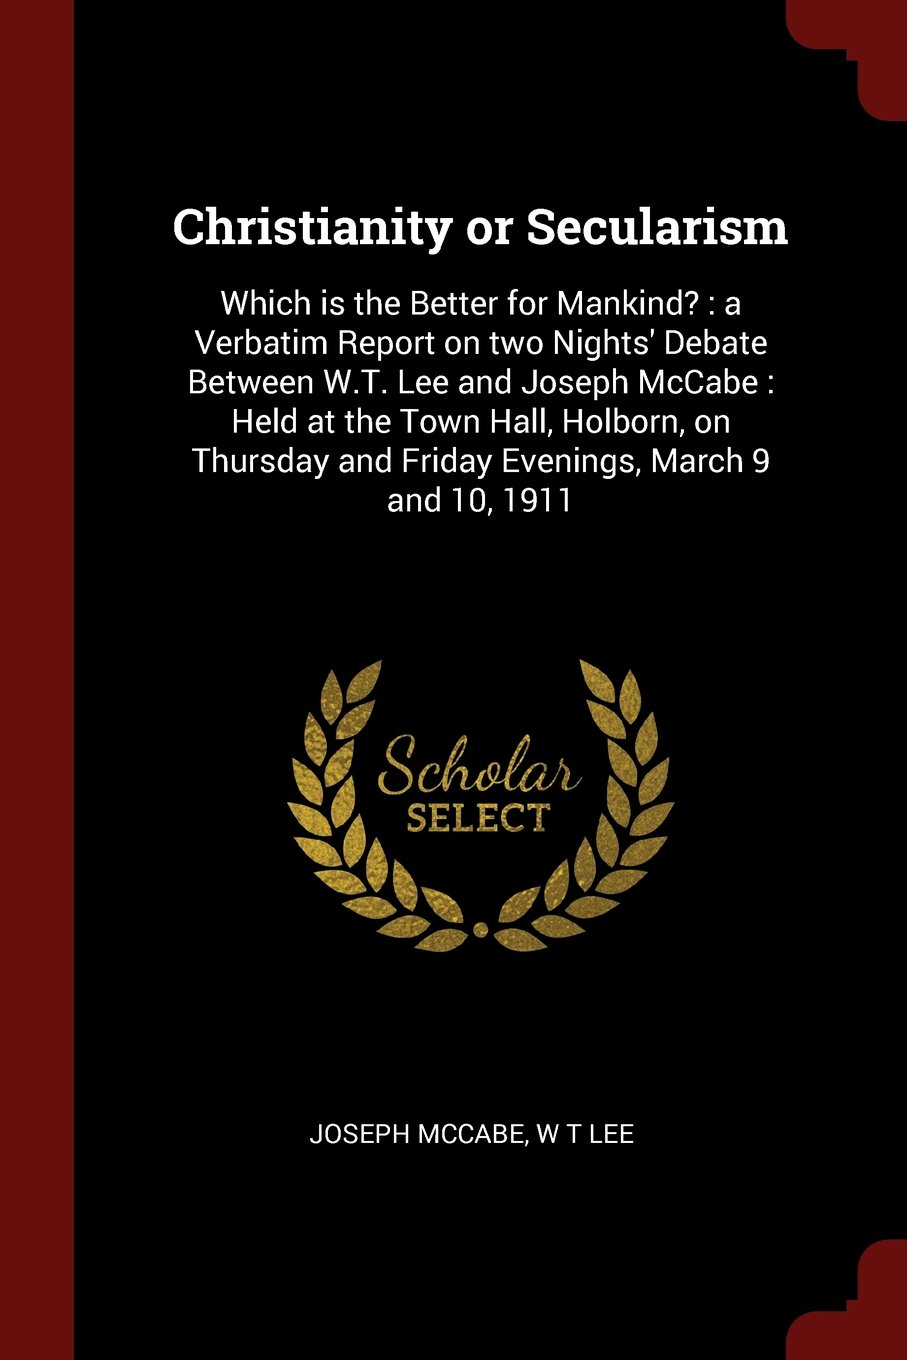 Read Online Christianity or Secularism: Which is the Better for Mankind? : a Verbatim Report on two Nights' Debate Between W.T. Lee and Joseph McCabe : Held at and Friday Evenings, March 9 and 10, 1911 pdf